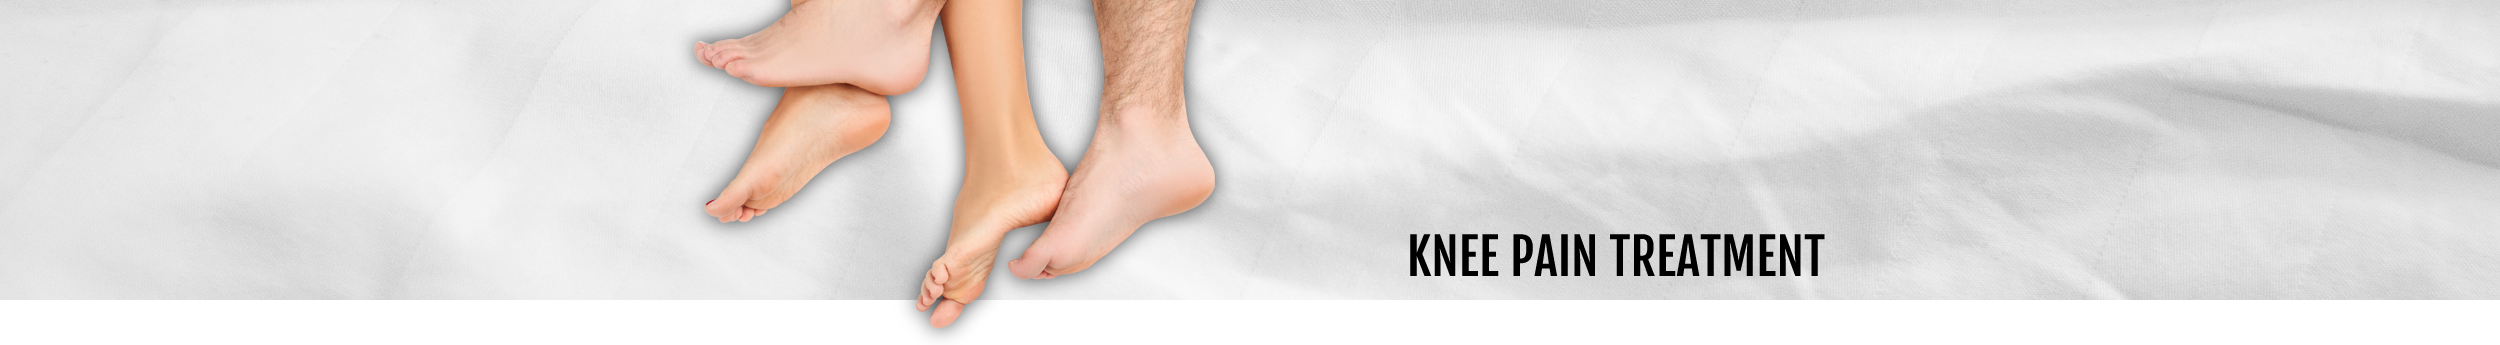 Knee pain treatment header for the Walk IN Foot Clinic in central London